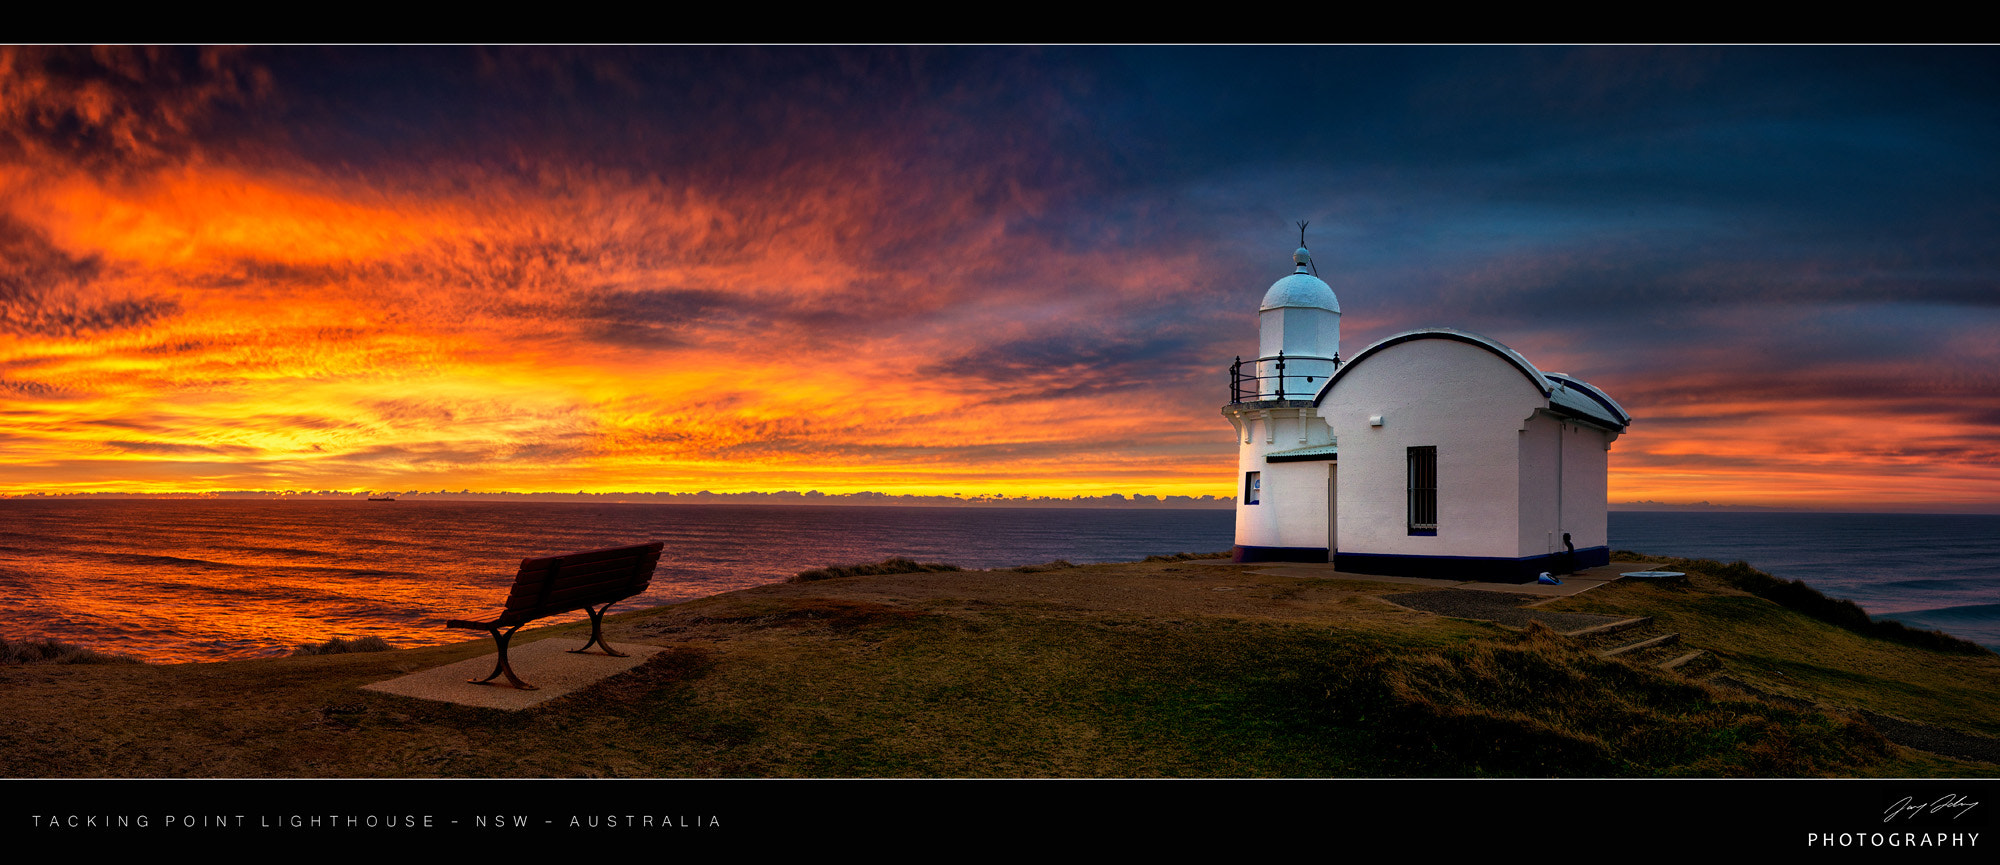 Photograph Tacking Point Lighthouse by Jay Daley on 500px